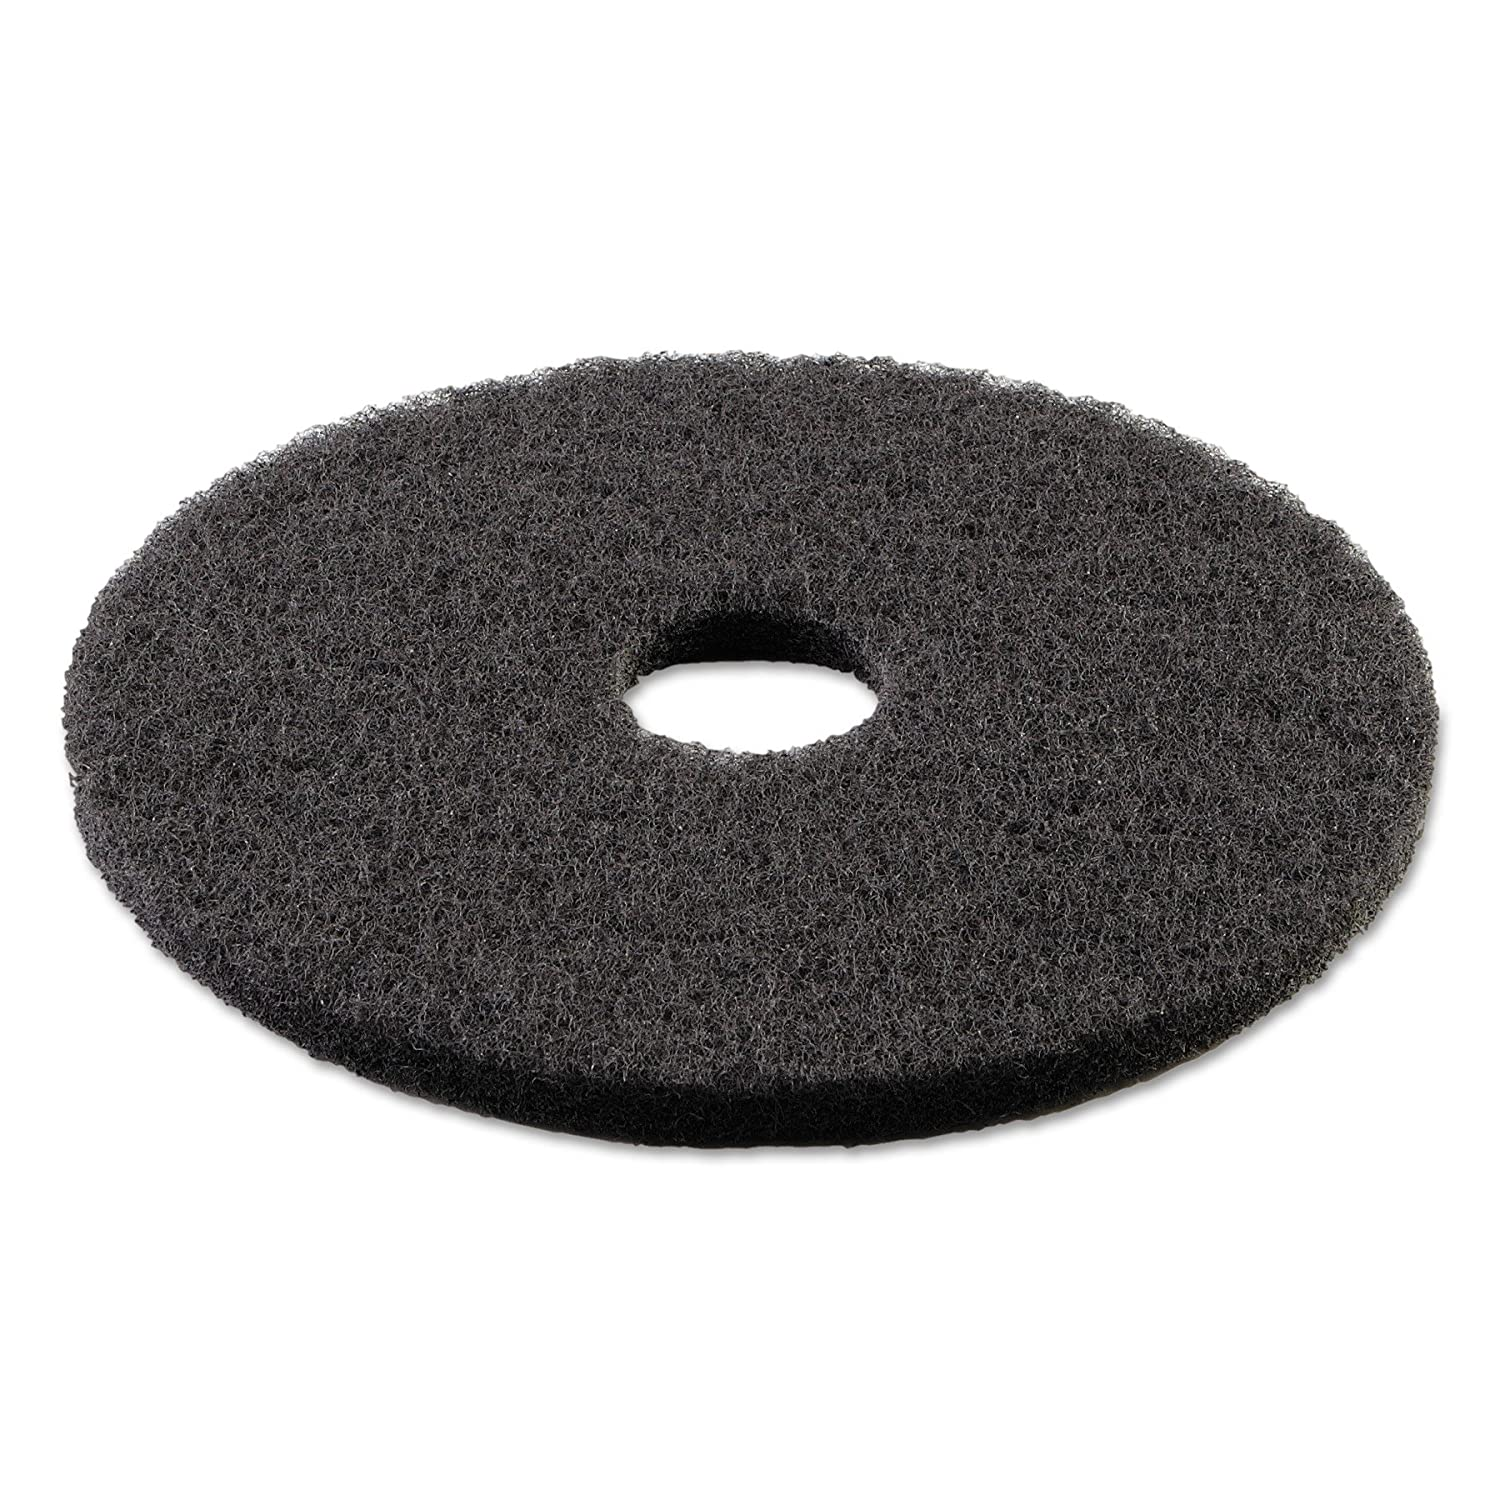 Boardwalk 4013BLA Standard Stripping Floor Pads, 13 Diameter, Black (Case of 5) 13 Diameter BWK4013BLA